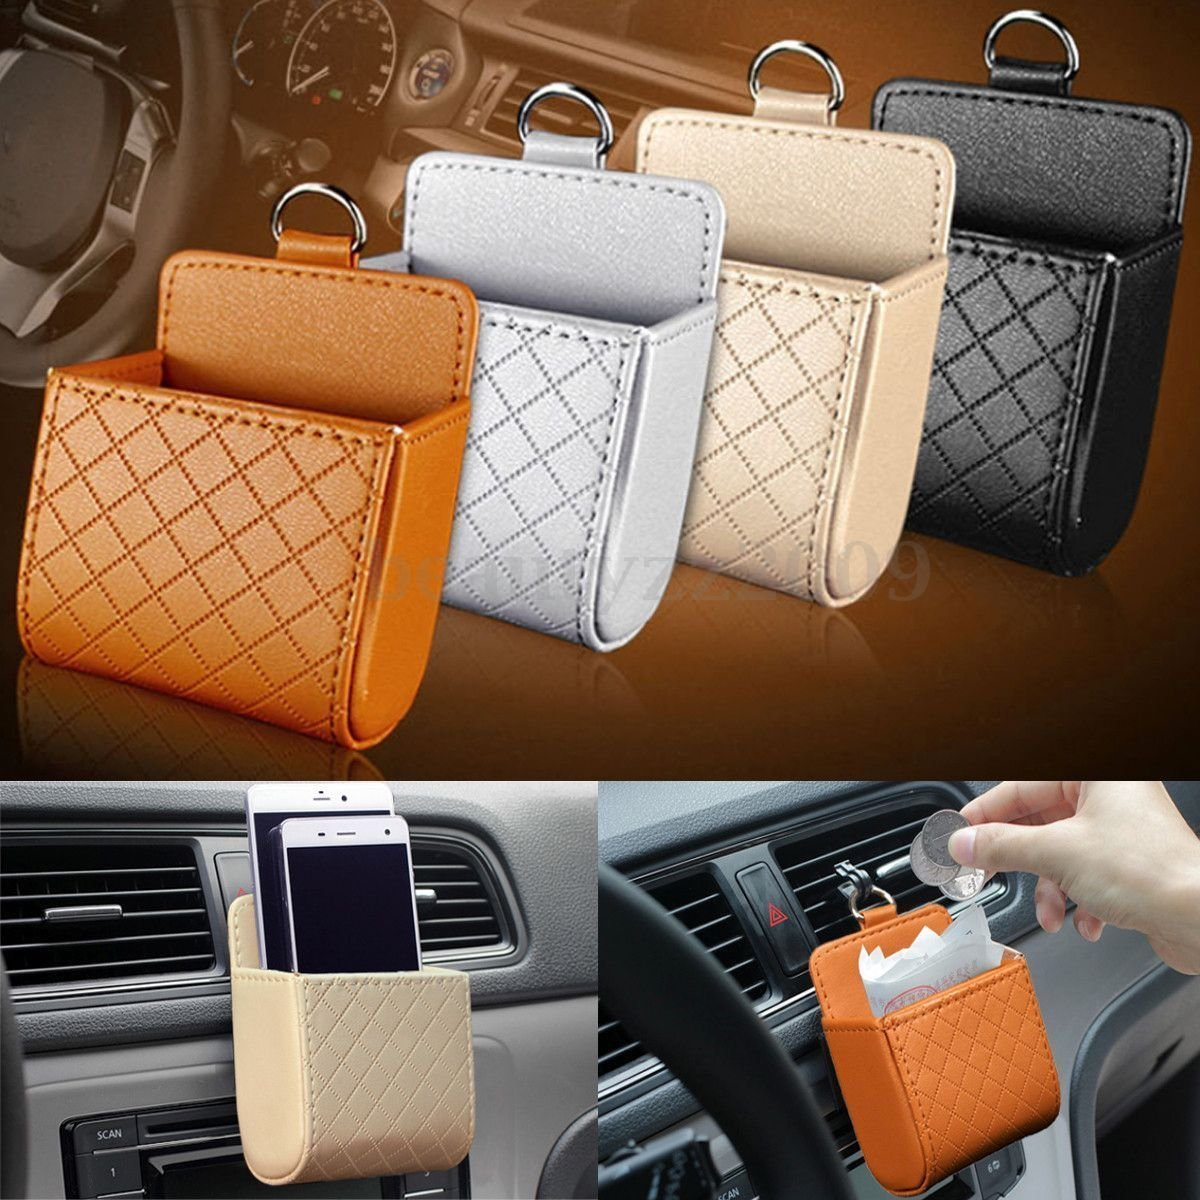 Black Yosoo Car Auto Seat Back Interior Air Vent Cell Phone Organizer Holder Bag Pouch Box Tidy Storage Coin Bag Case with Hook